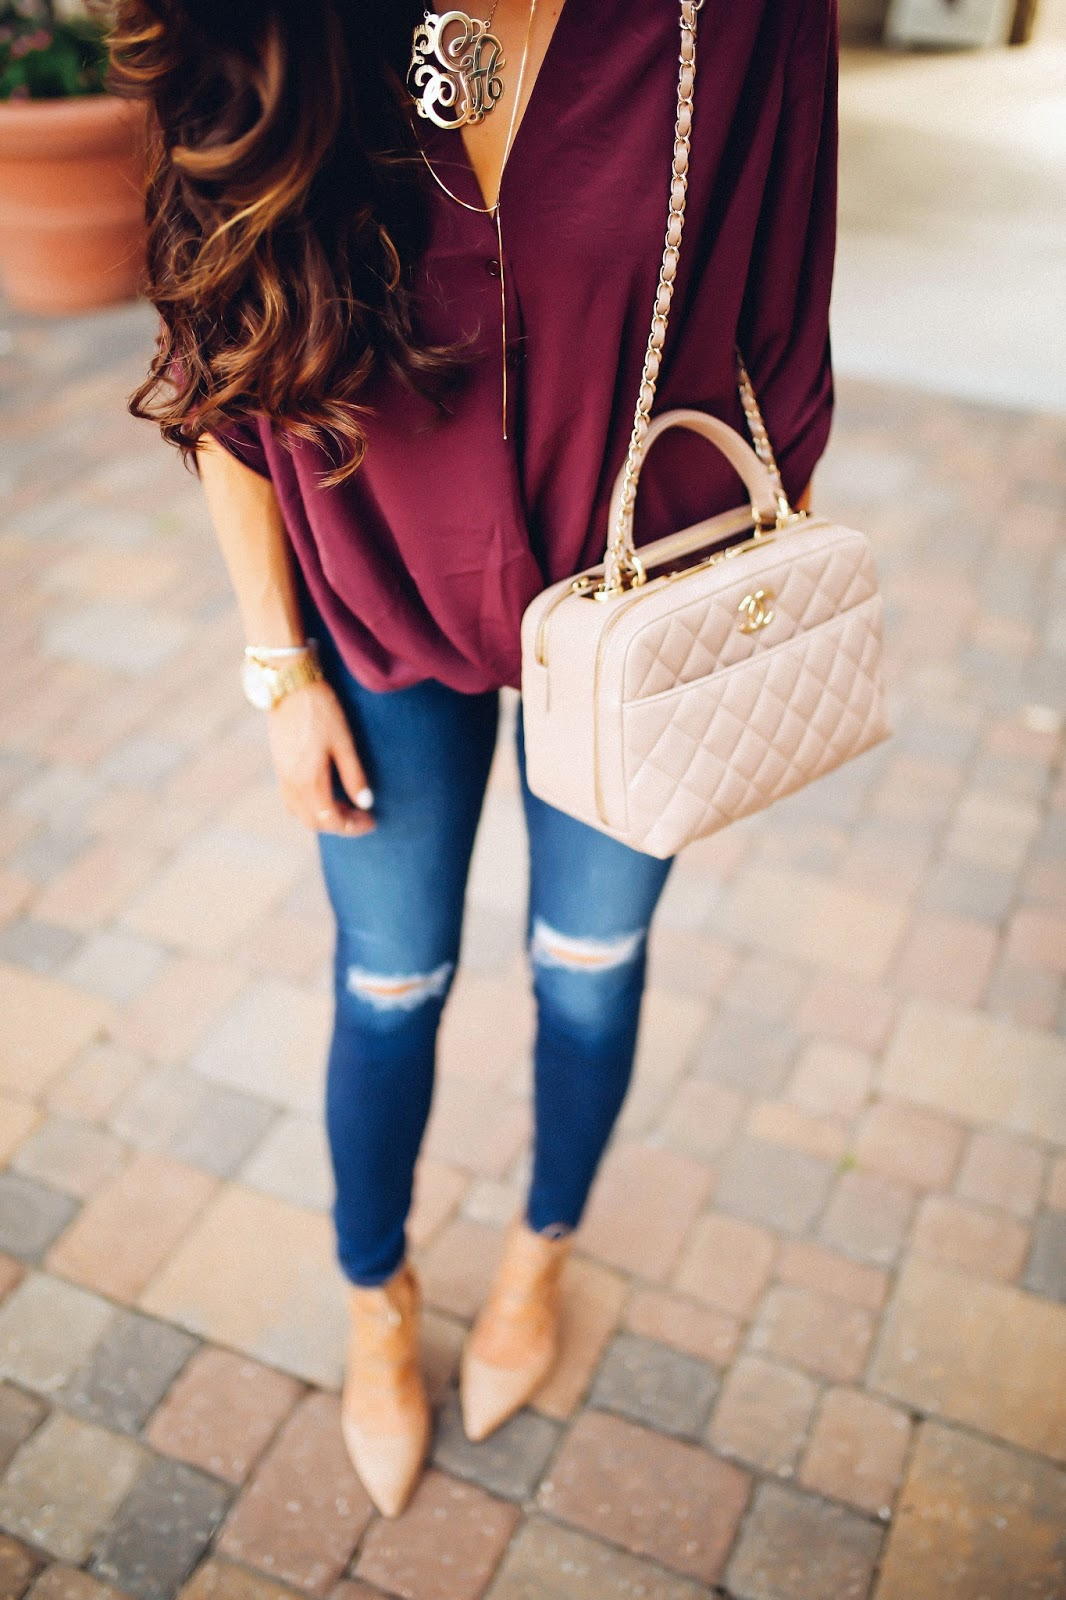 Southern Curls & Pearls: The Perfect Date Night Outfit